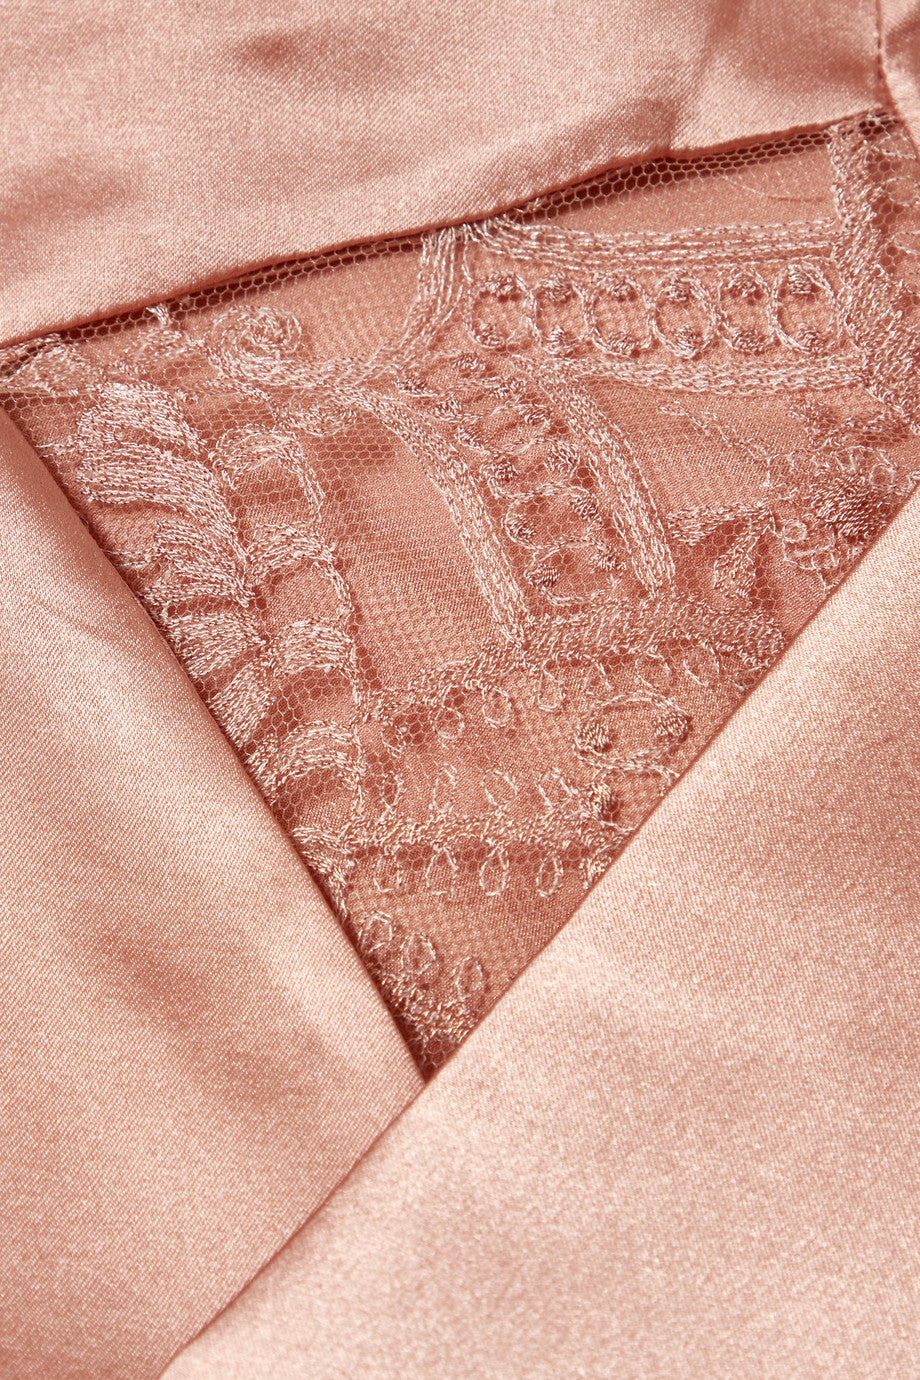 Desert Rose Pyjama Top in Rose Gold - I.D. Sarrieri